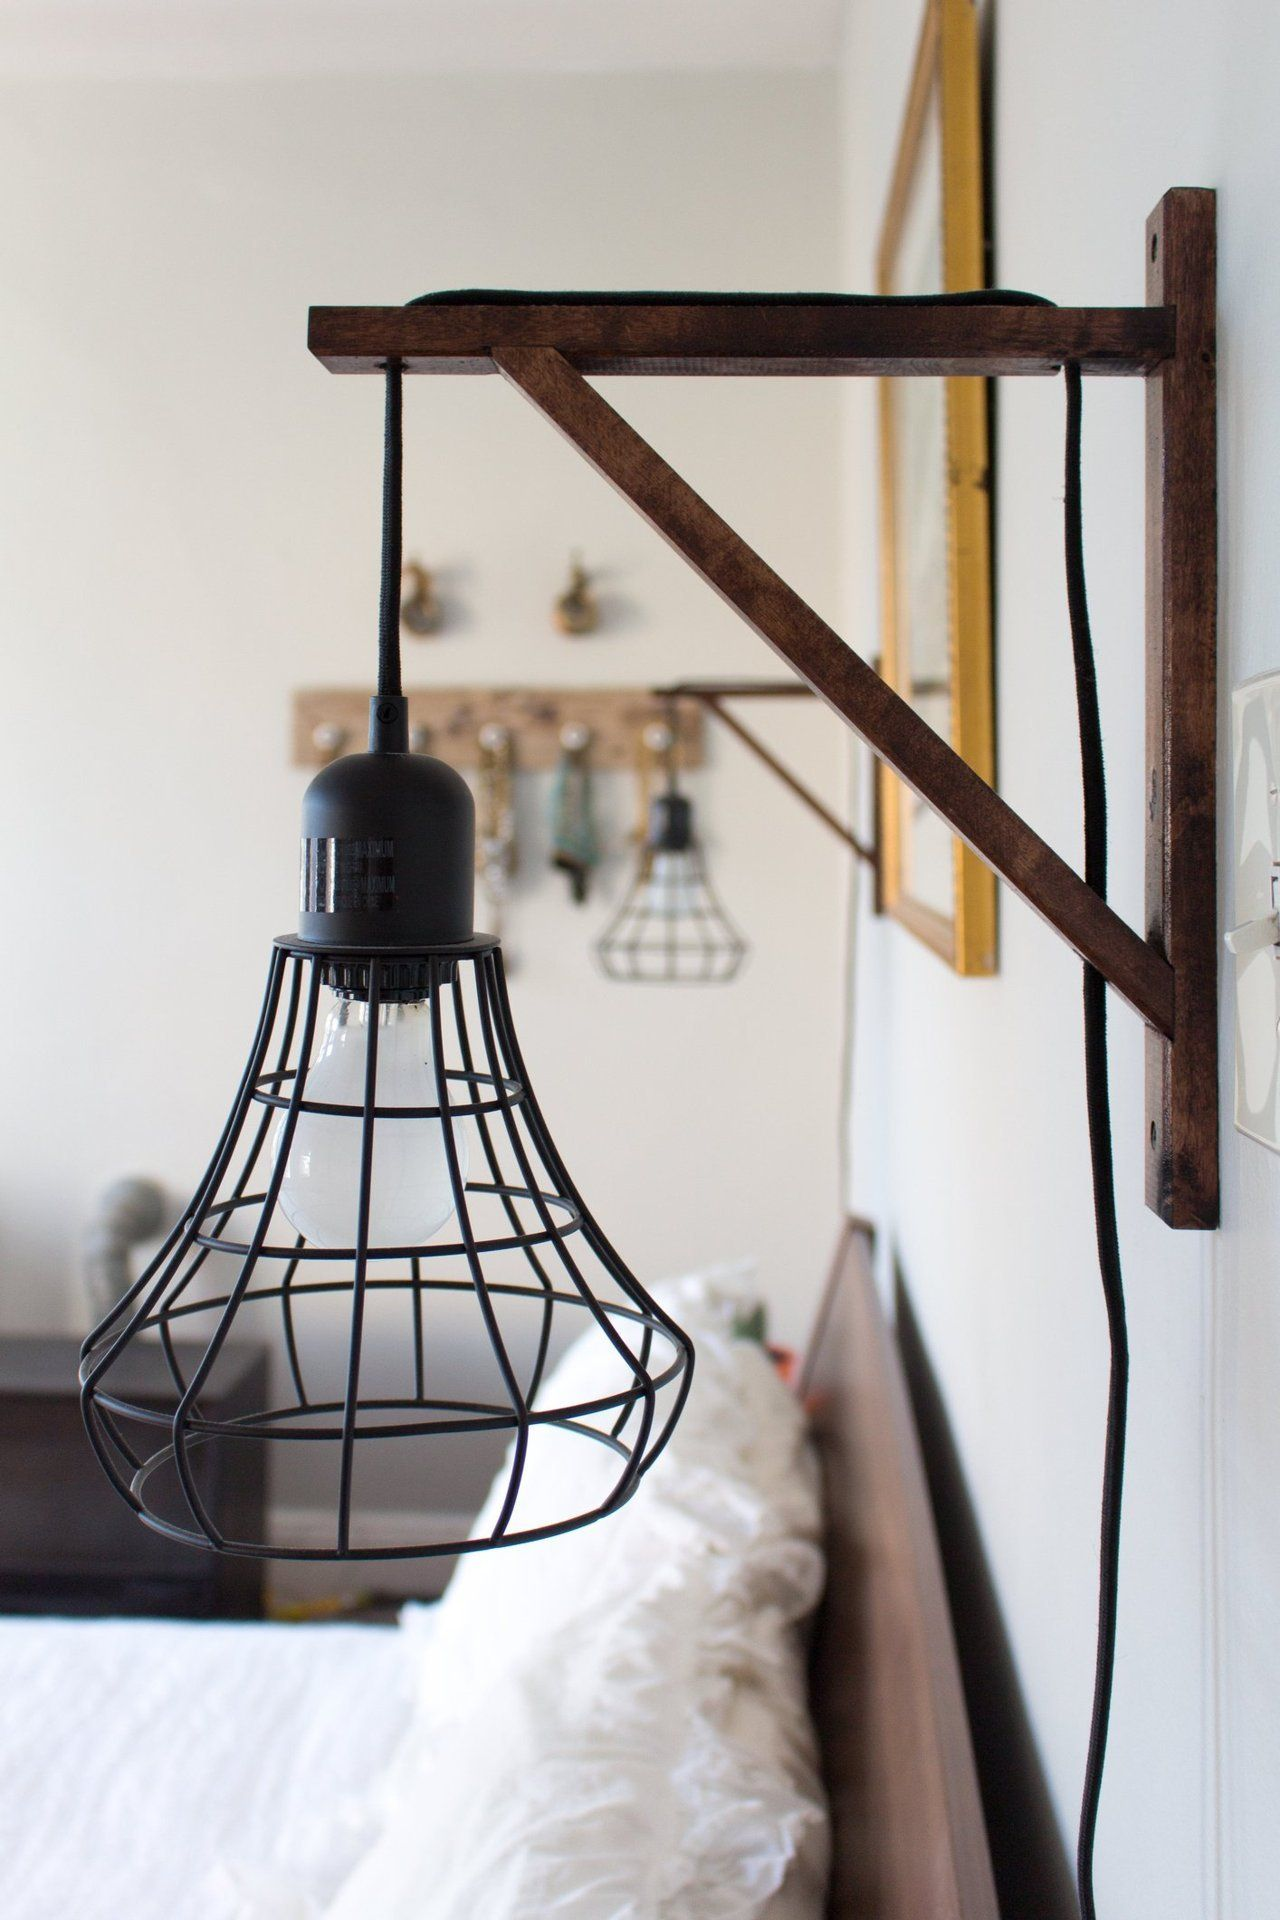 ikea pendant light wired through wooden support taylor alana s carefully crafted hoboken apartment [ 1280 x 1920 Pixel ]